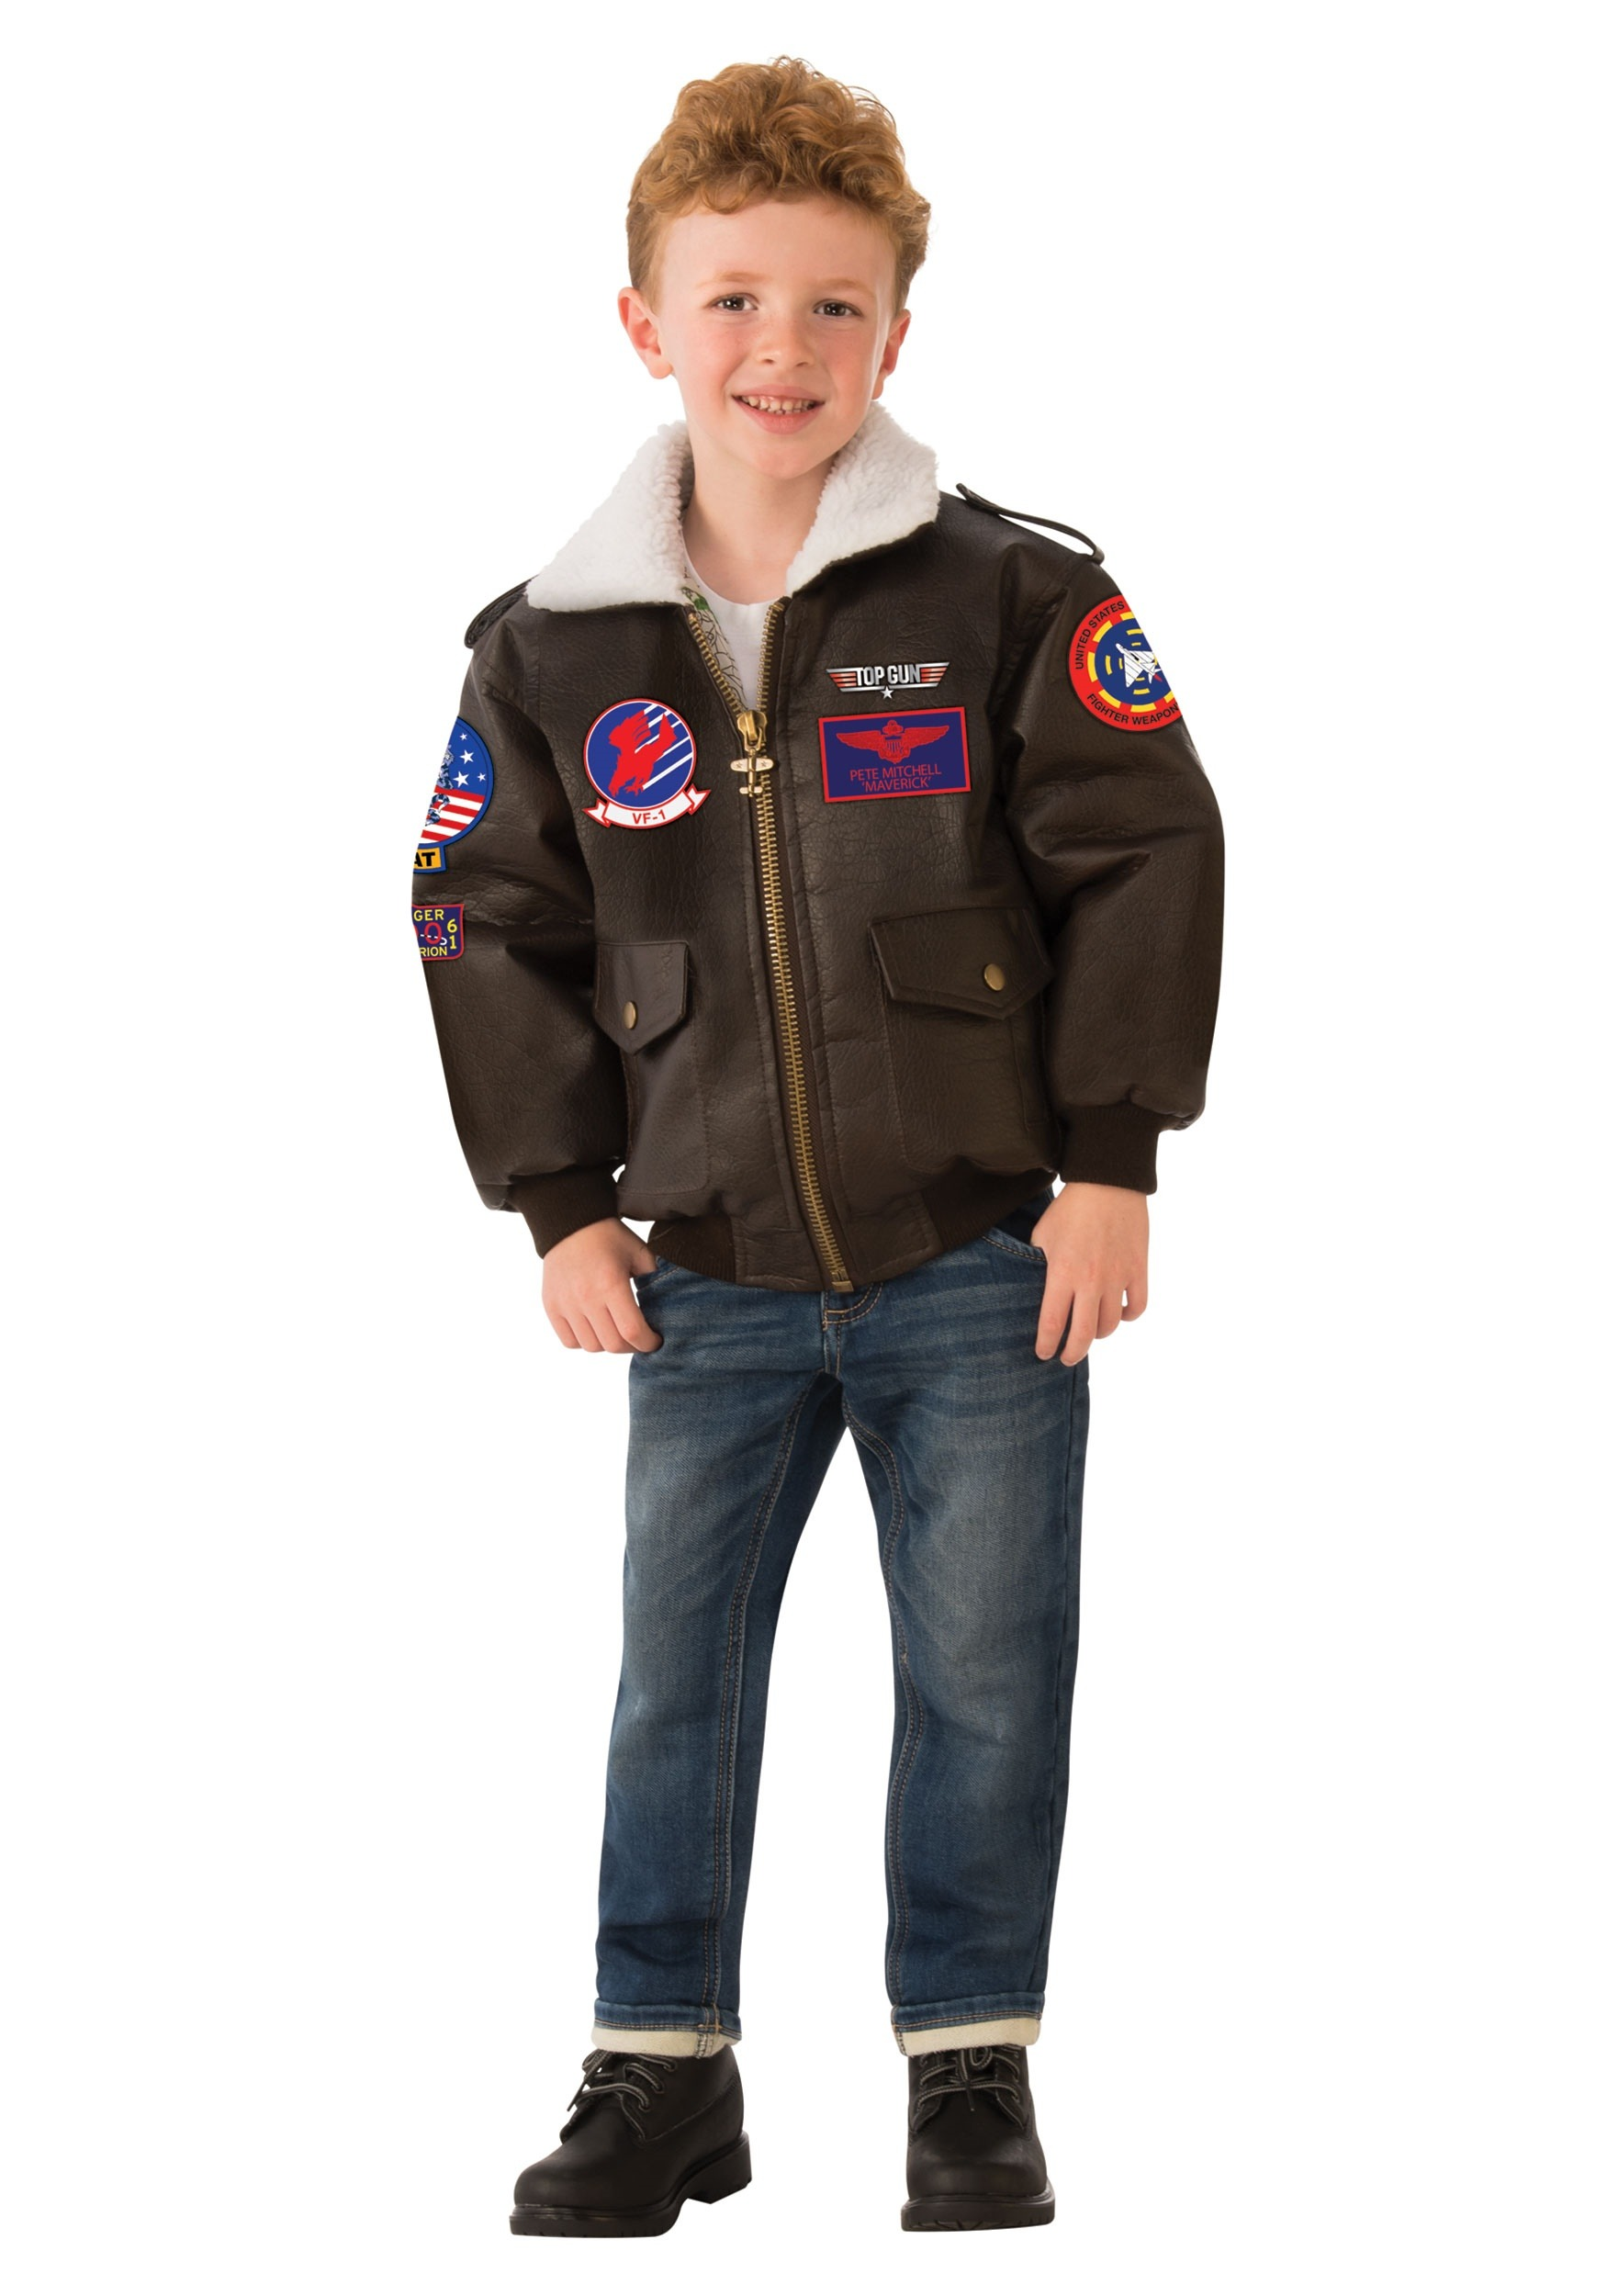 Top Gun Bomber Jacket Costume For Kids